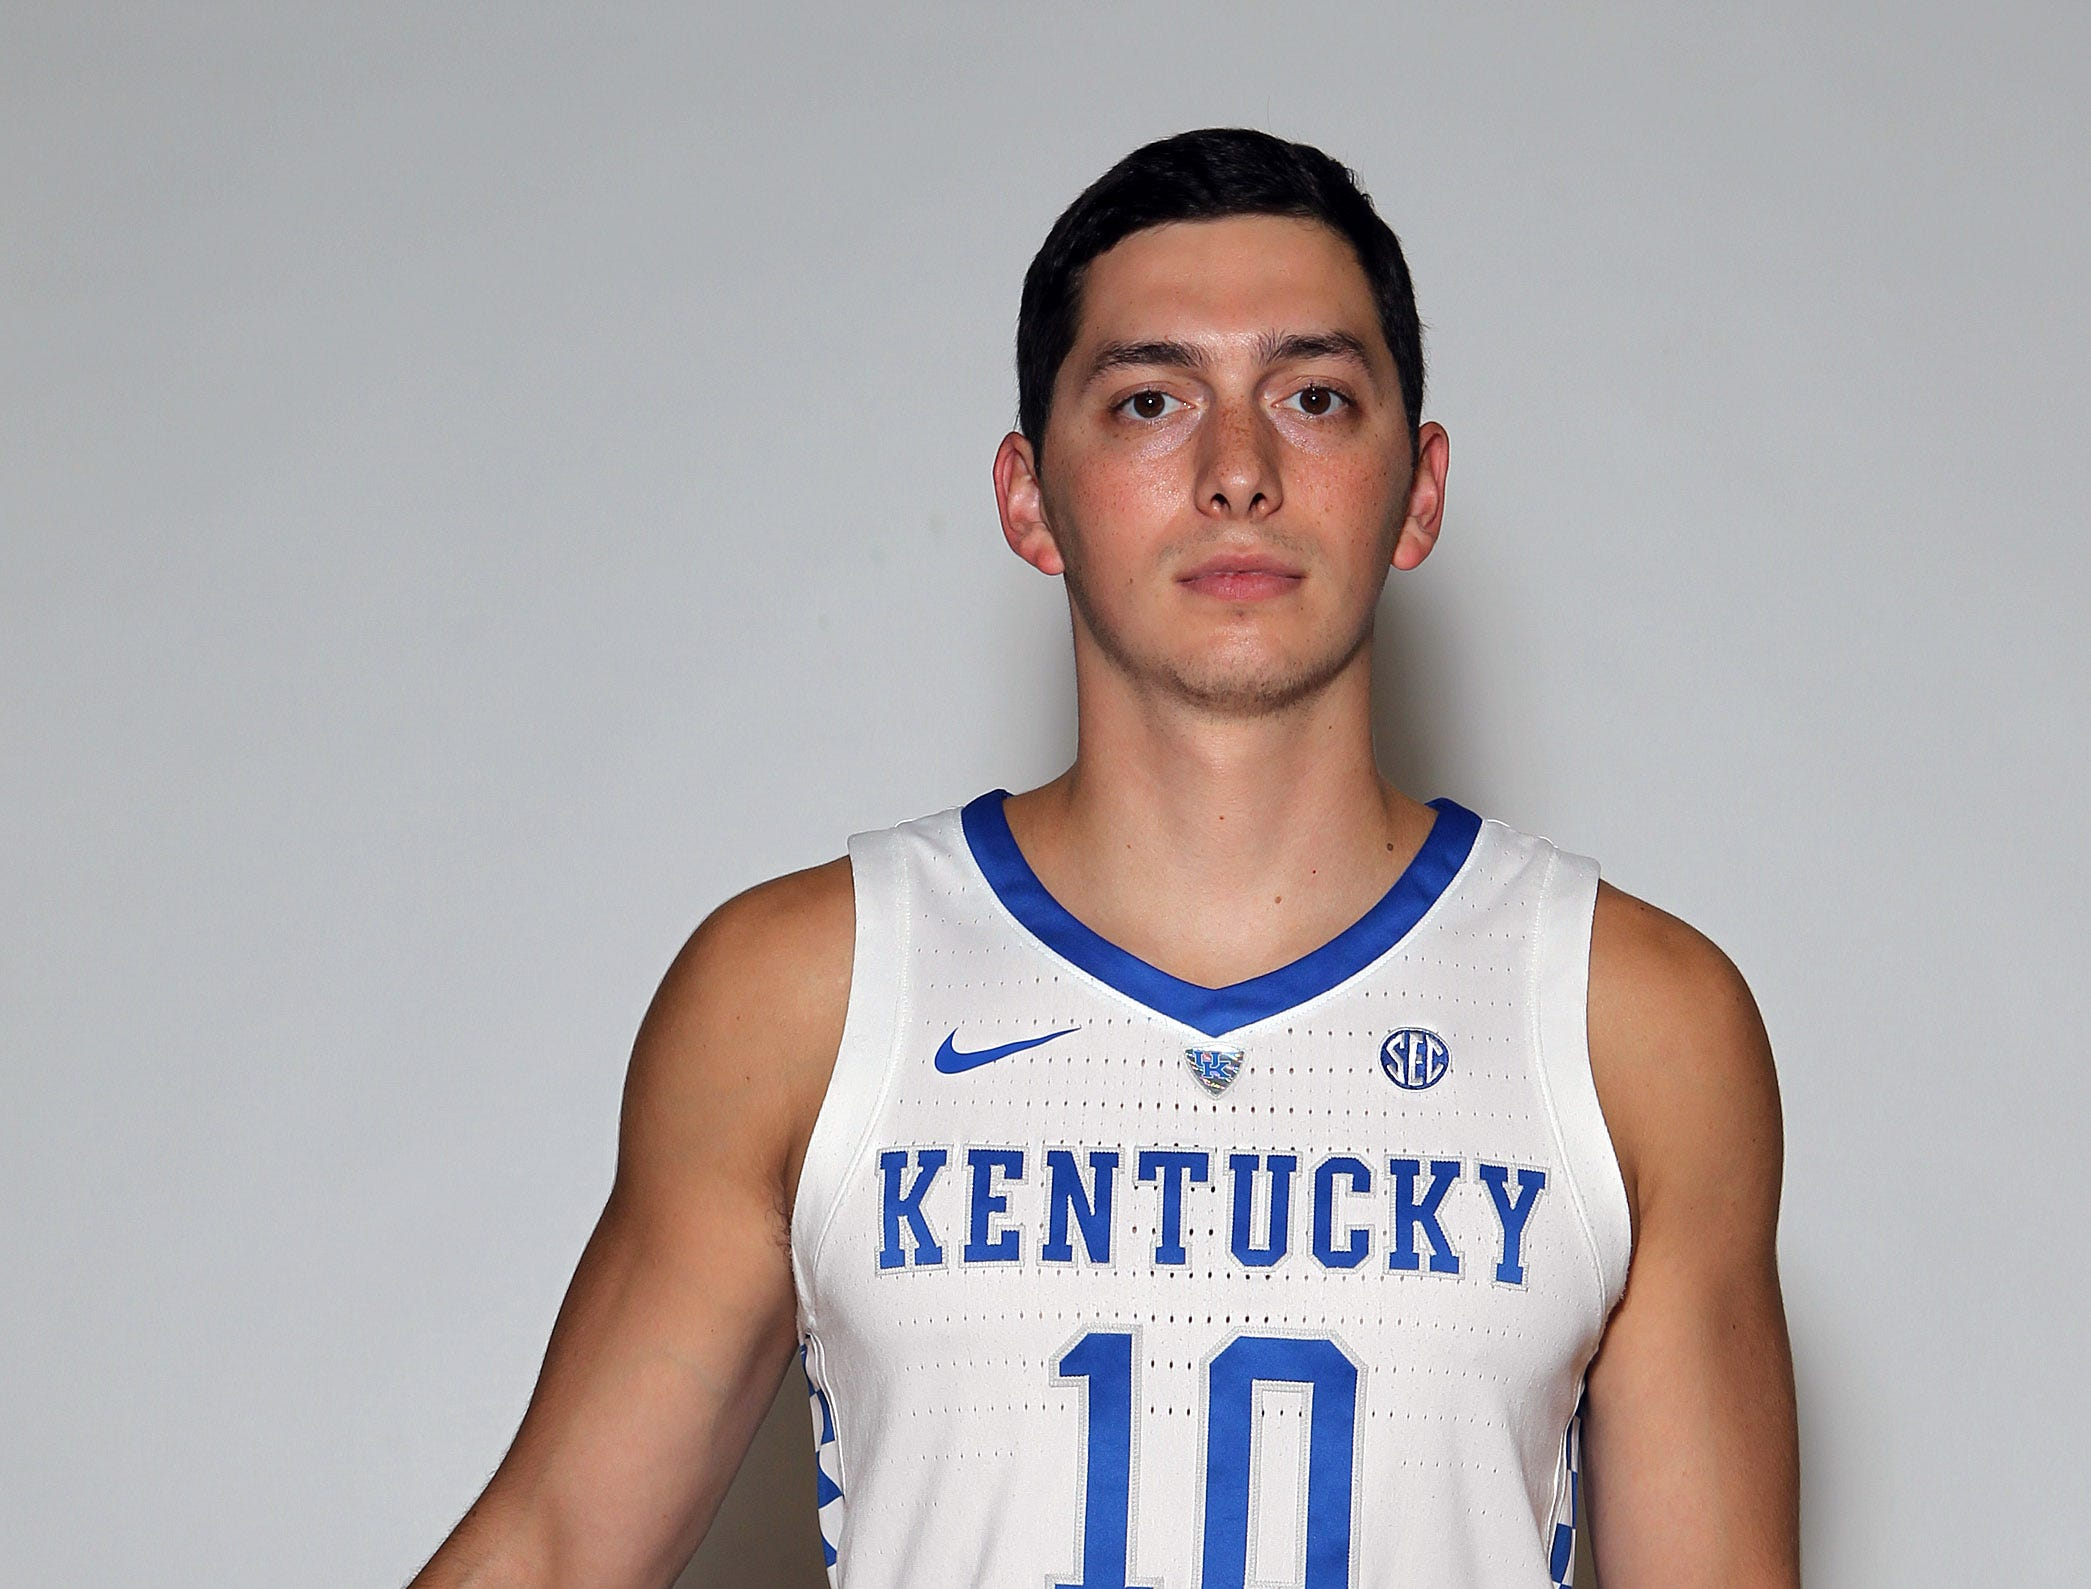 Kentucky's Jonny David poses during the teams picture day in Memorial Coliseum on campus. Sep. 20, 2018